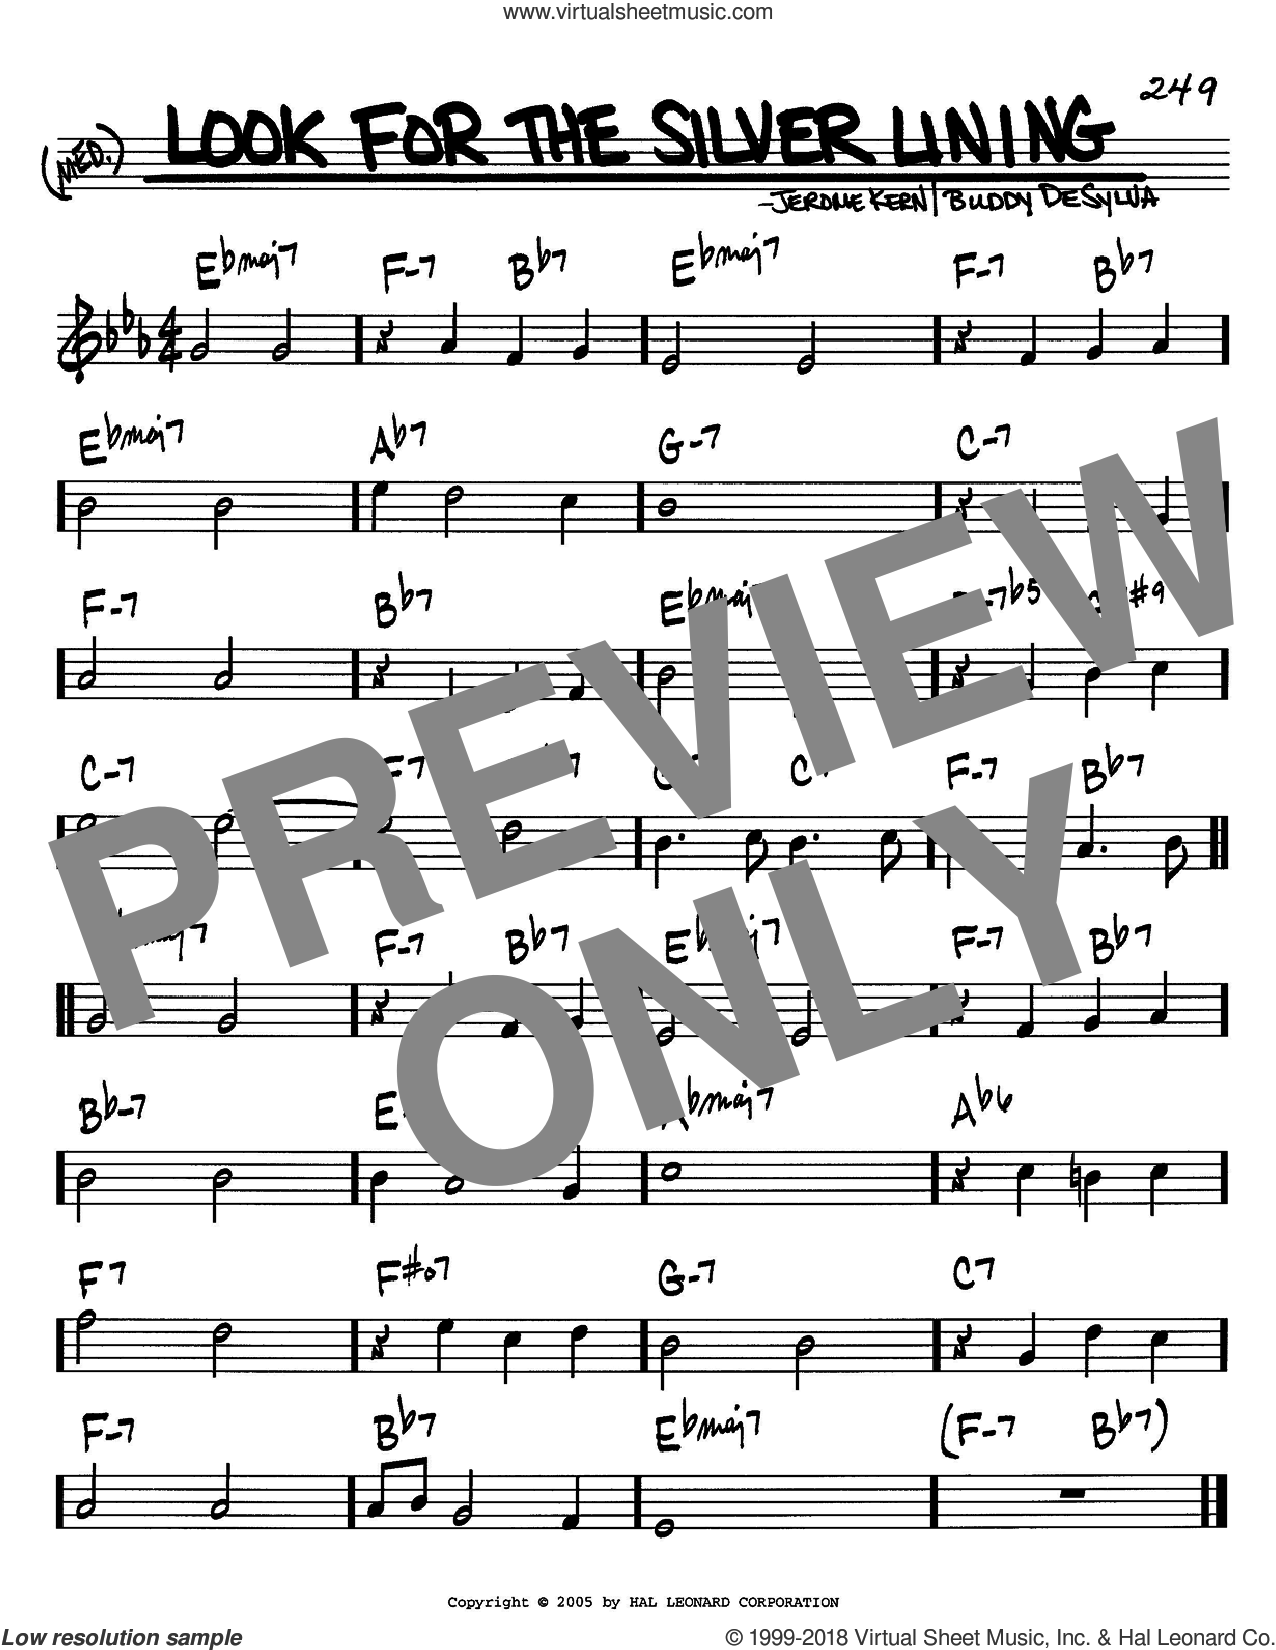 Look For The Silver Lining sheet music for voice and other instruments (C) by Buddy DeSylva